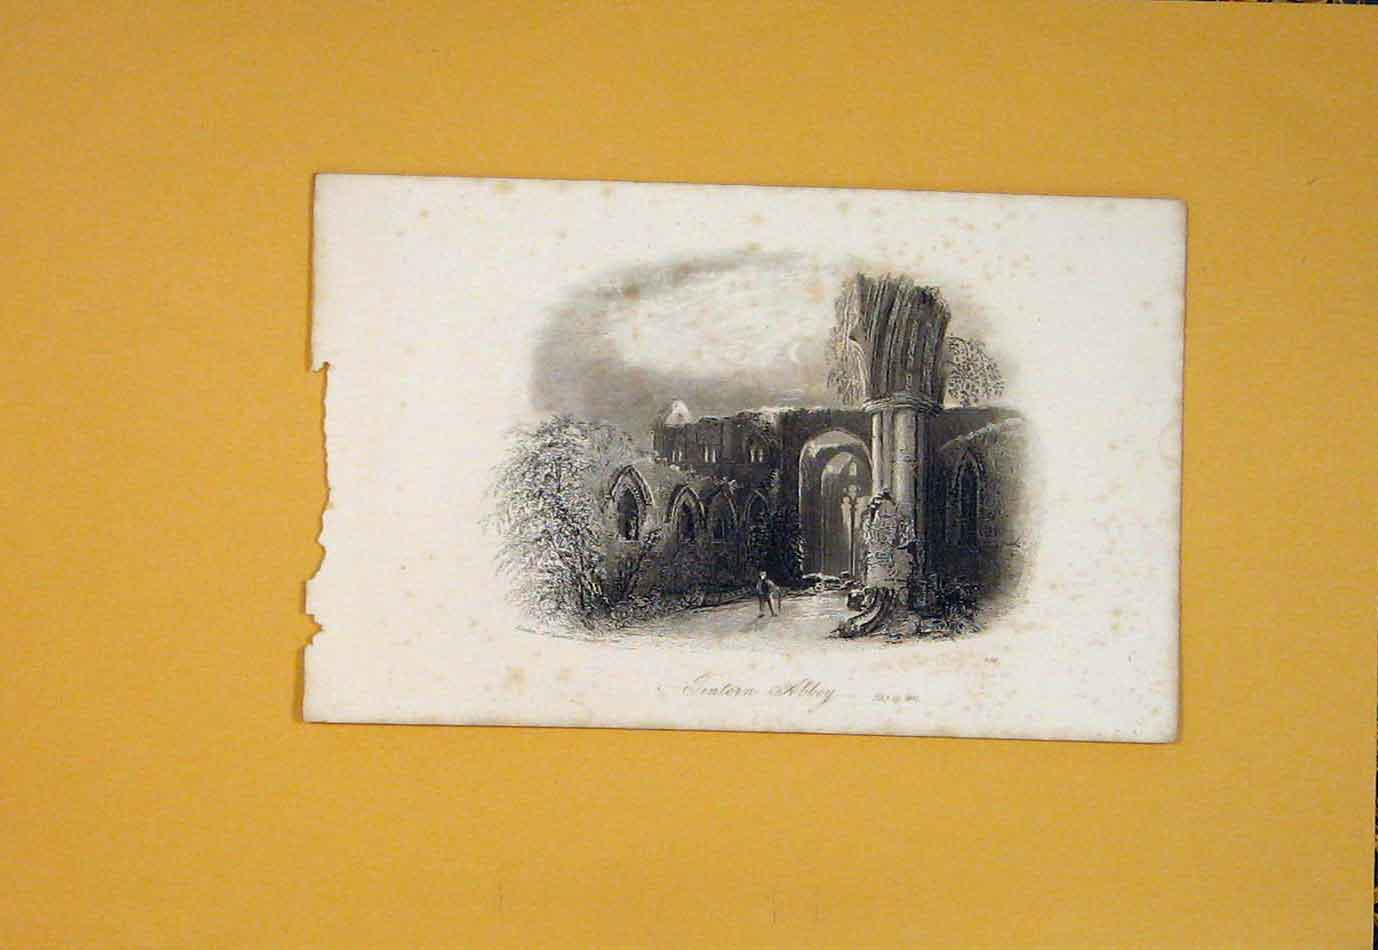 Print Jintern Abbey Fine Art C1865 England 306021 Old Original